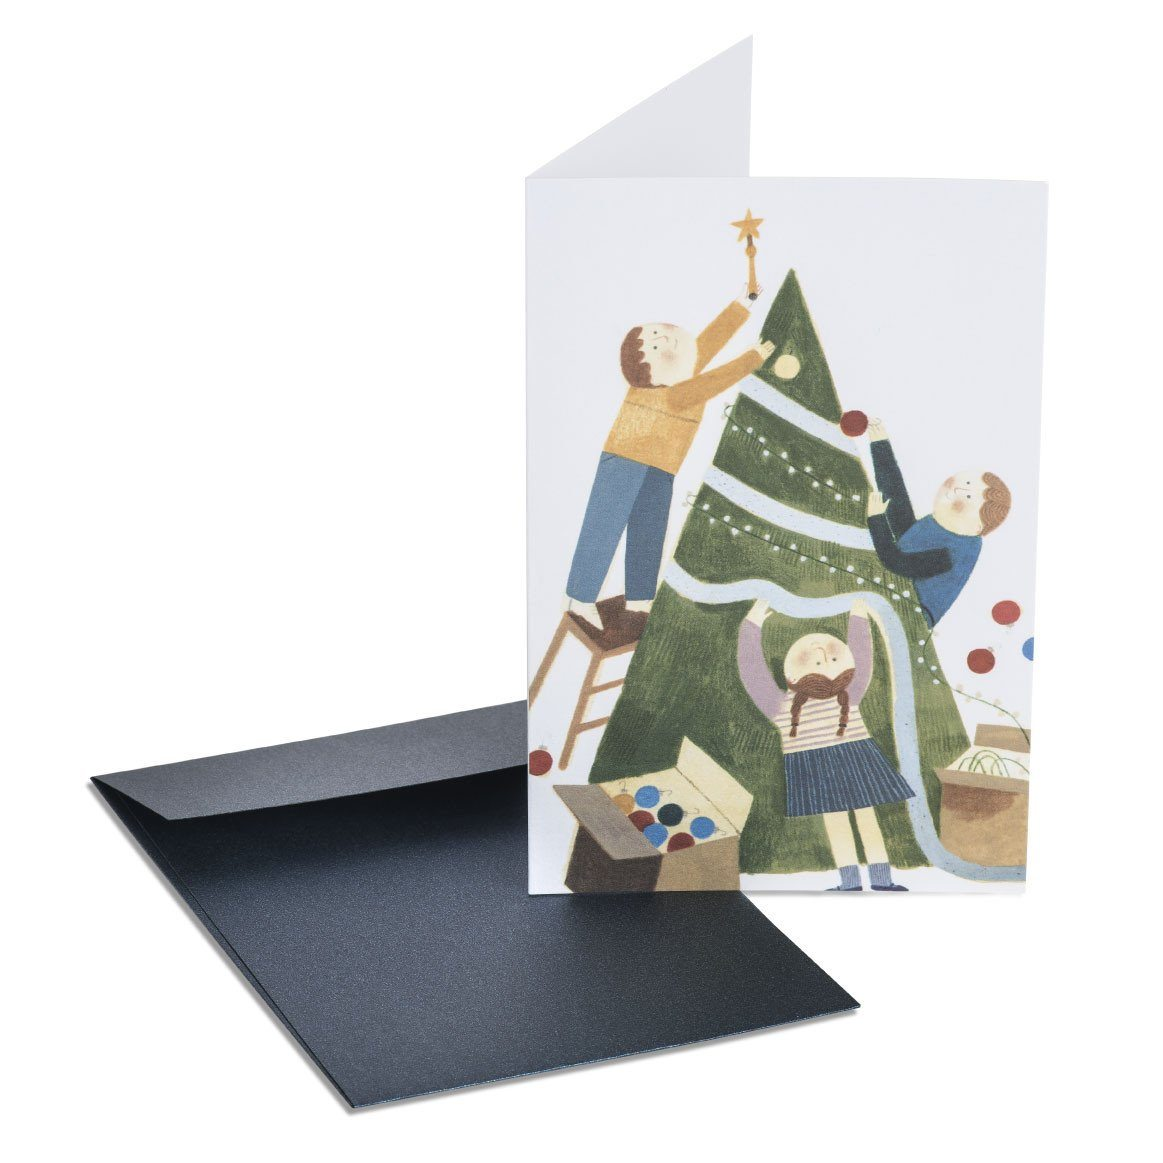 Decorating The Tree Greeting Card - Christmas Cards - MULTIFOLIA ATELIER di Rita Girola - Naiise